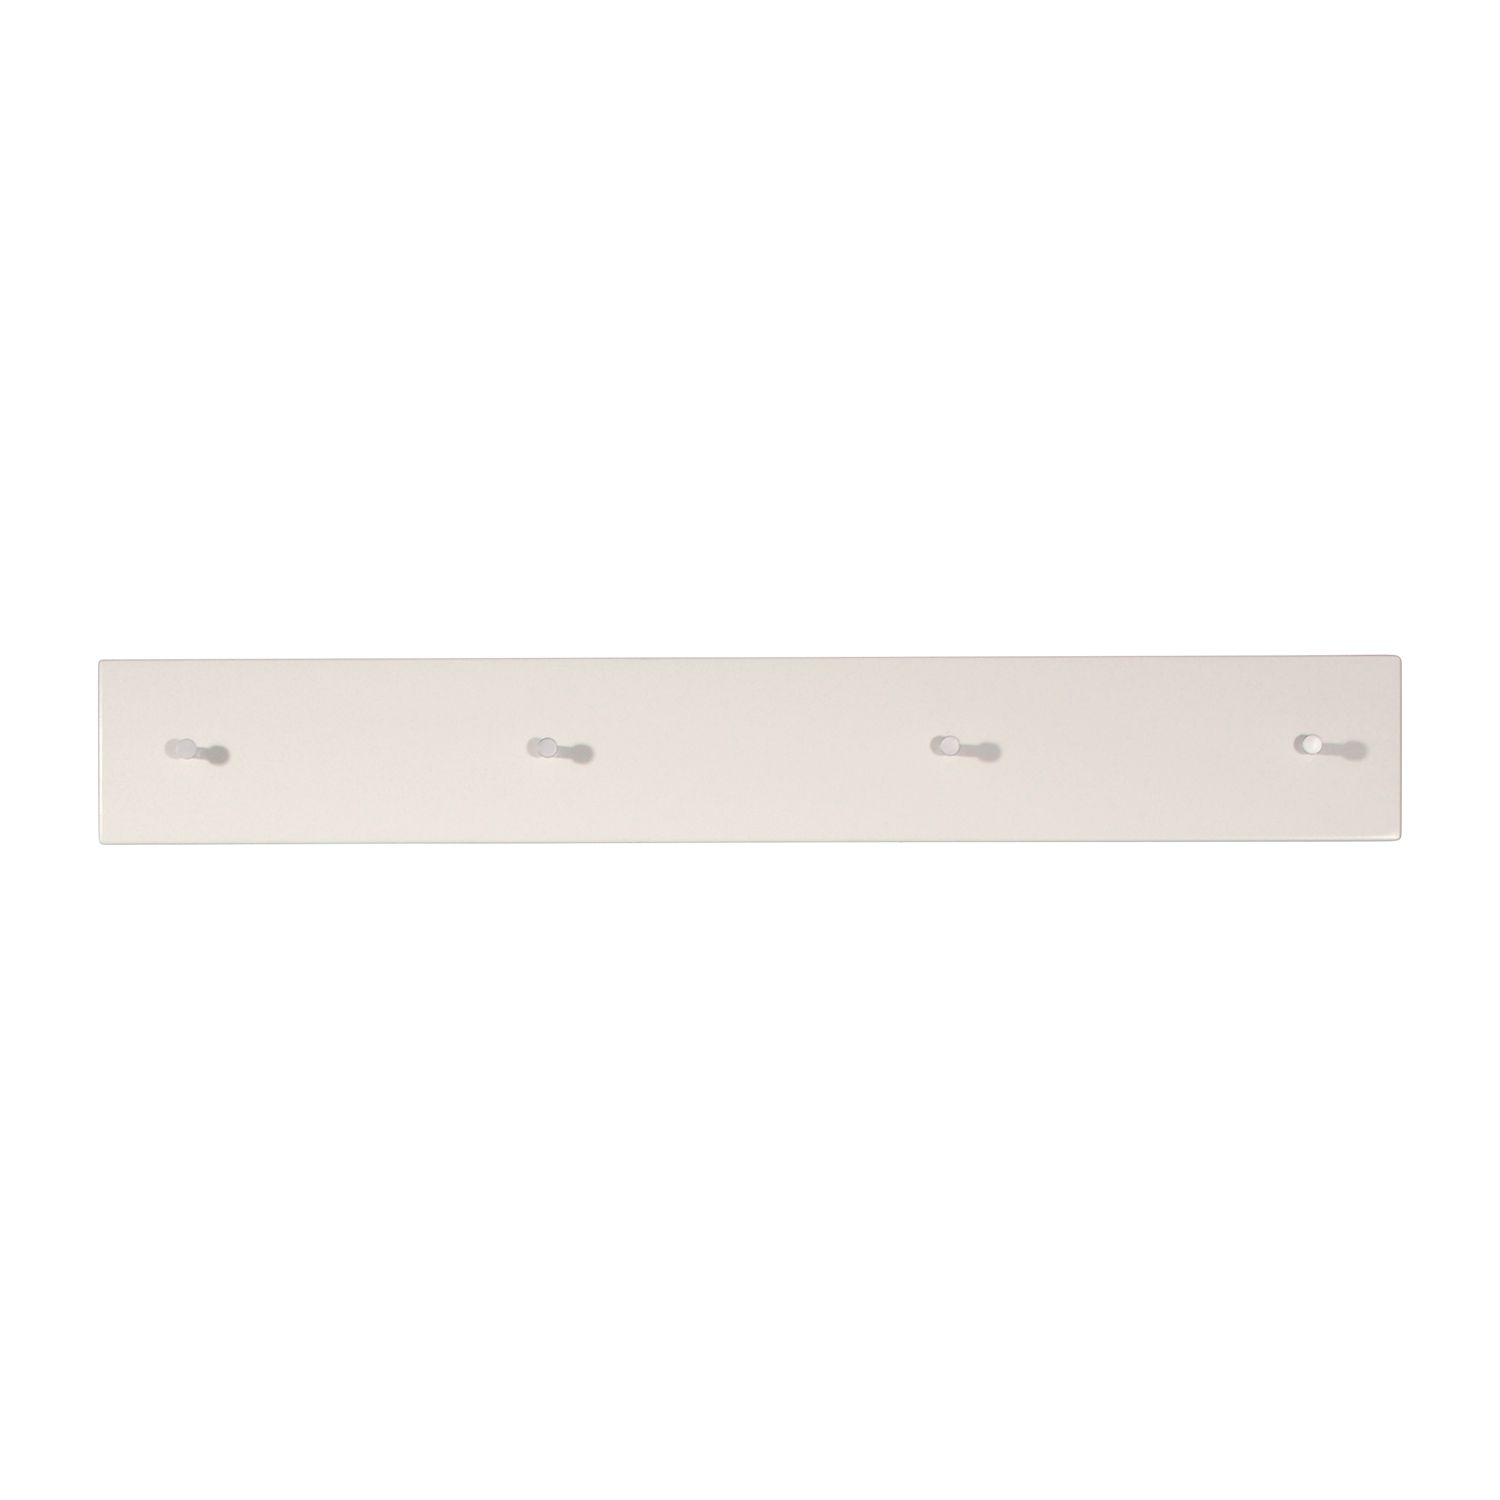 Home 24 - Portemanteau mural colorado - blanc brillant, top square